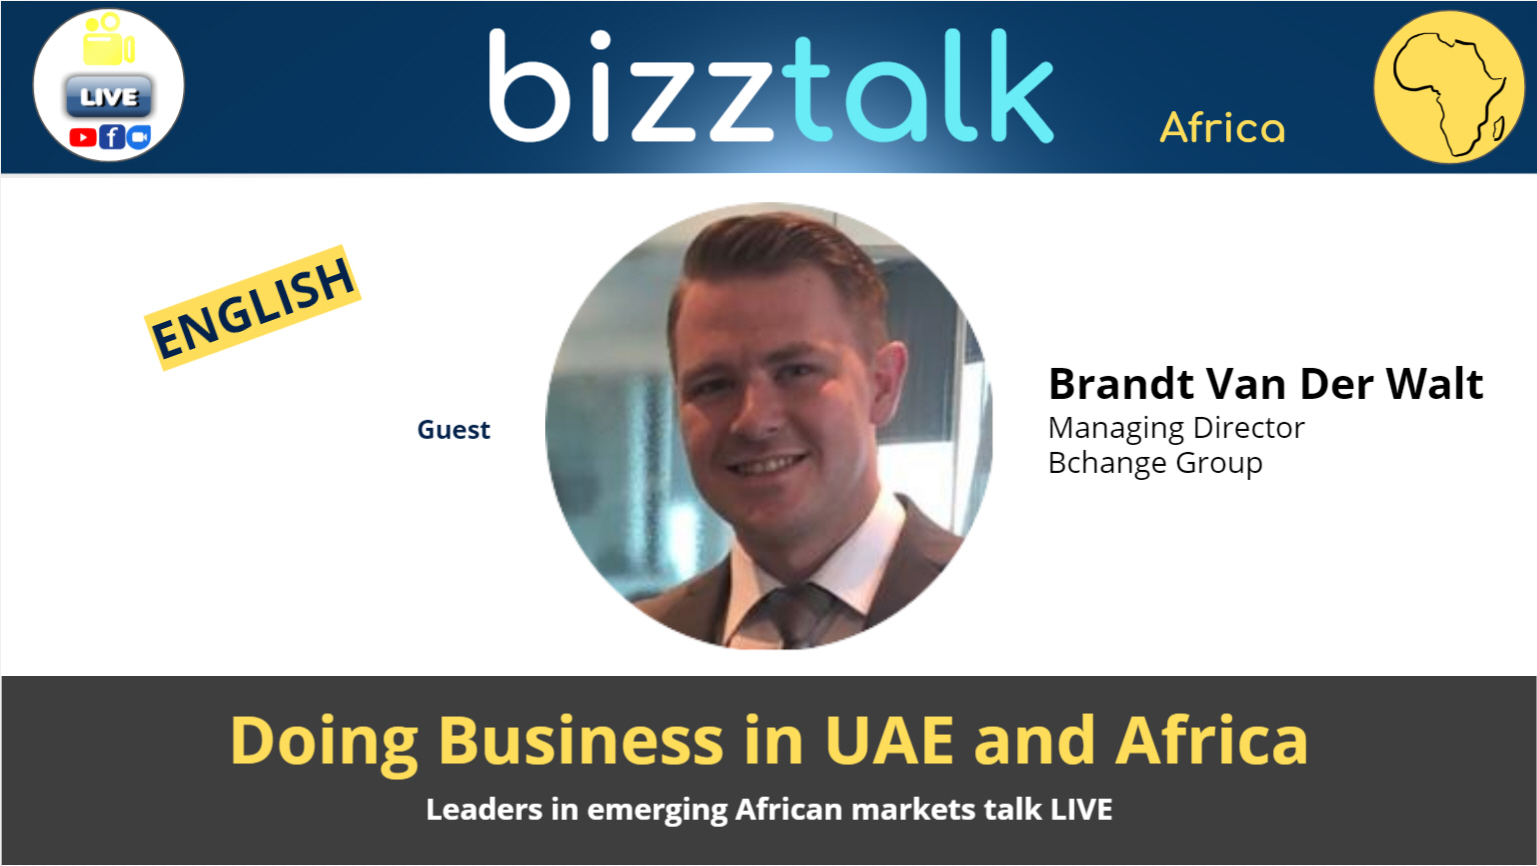 Doing Business in UAE and Africa